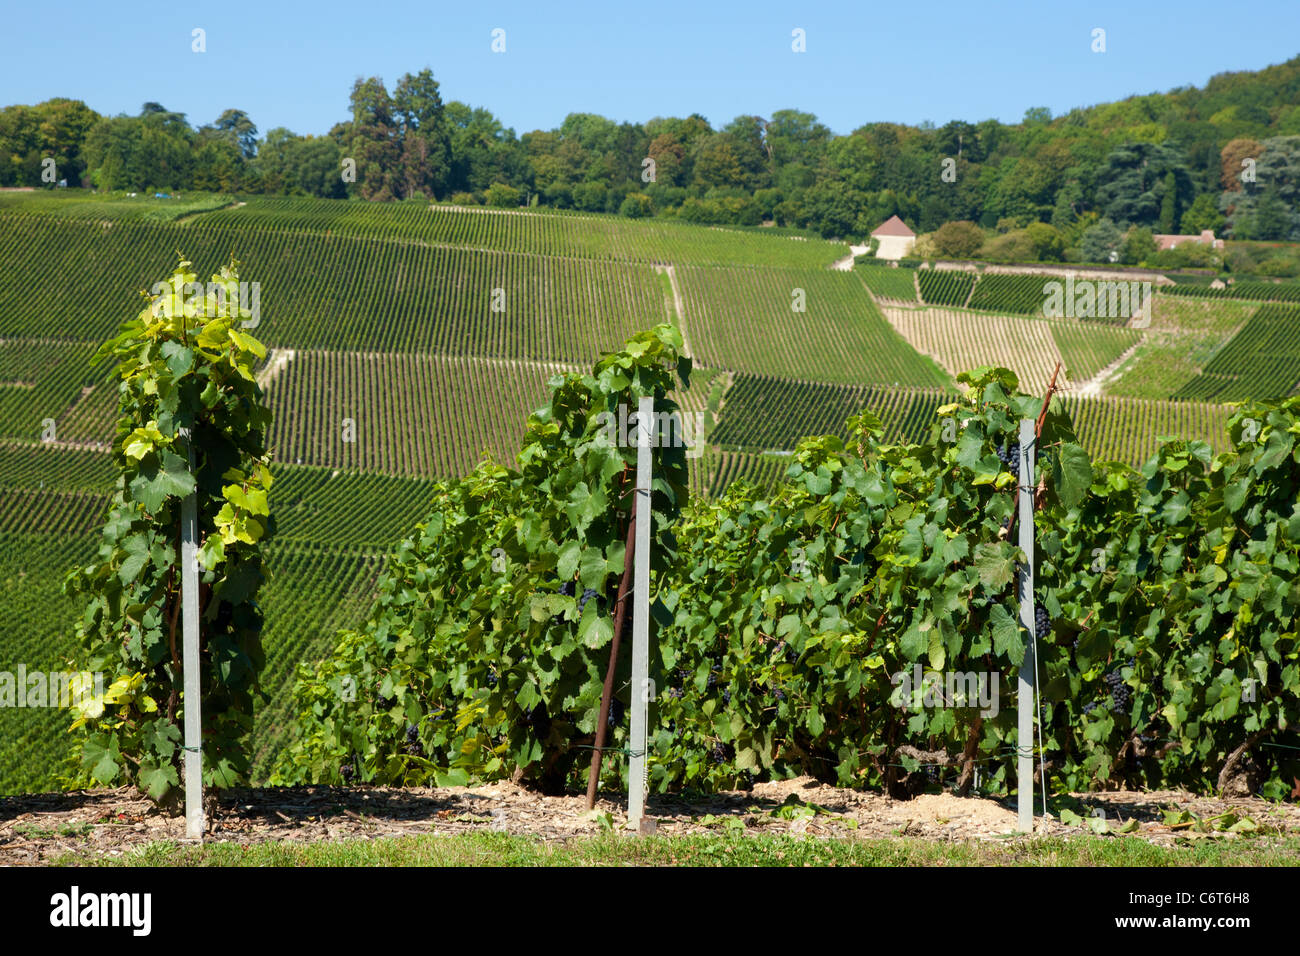 Vineyards in Champaign region - Stock Image